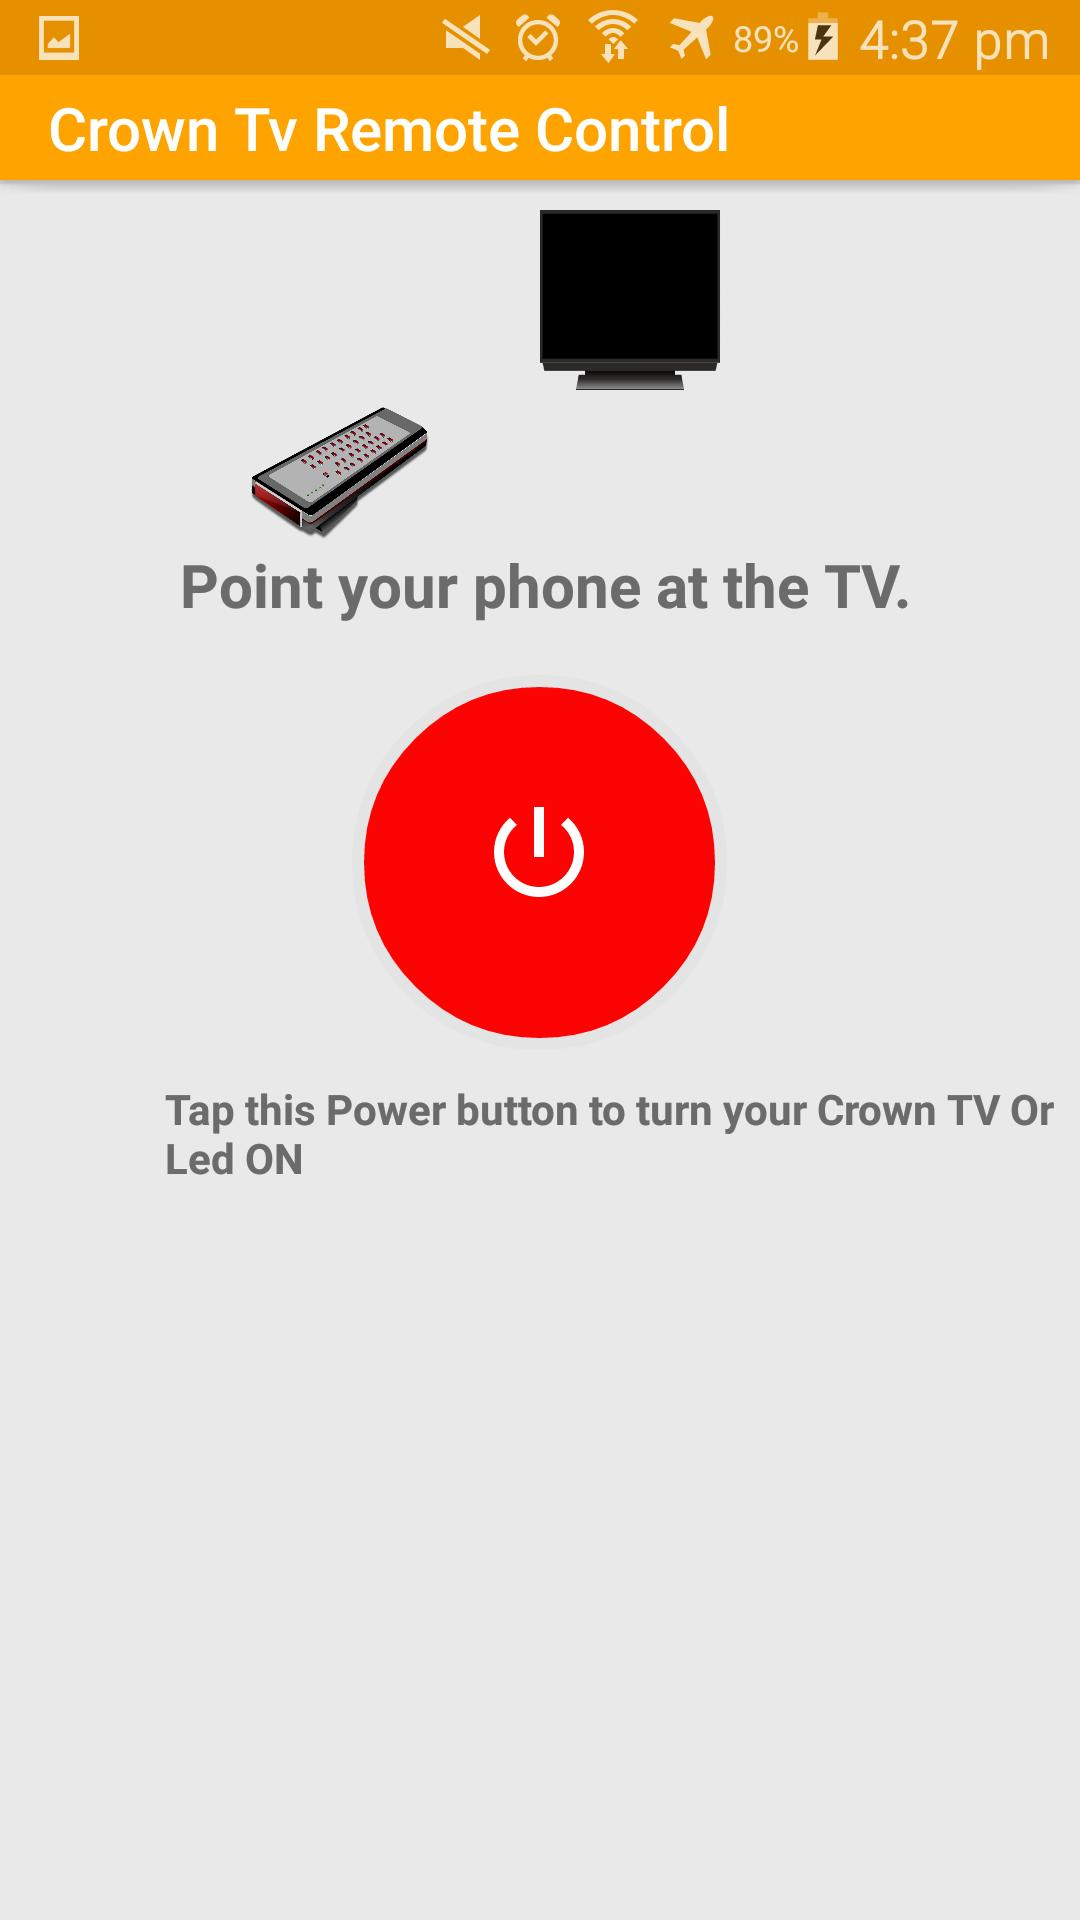 Crown Tv Remote Control for Android - APK Download